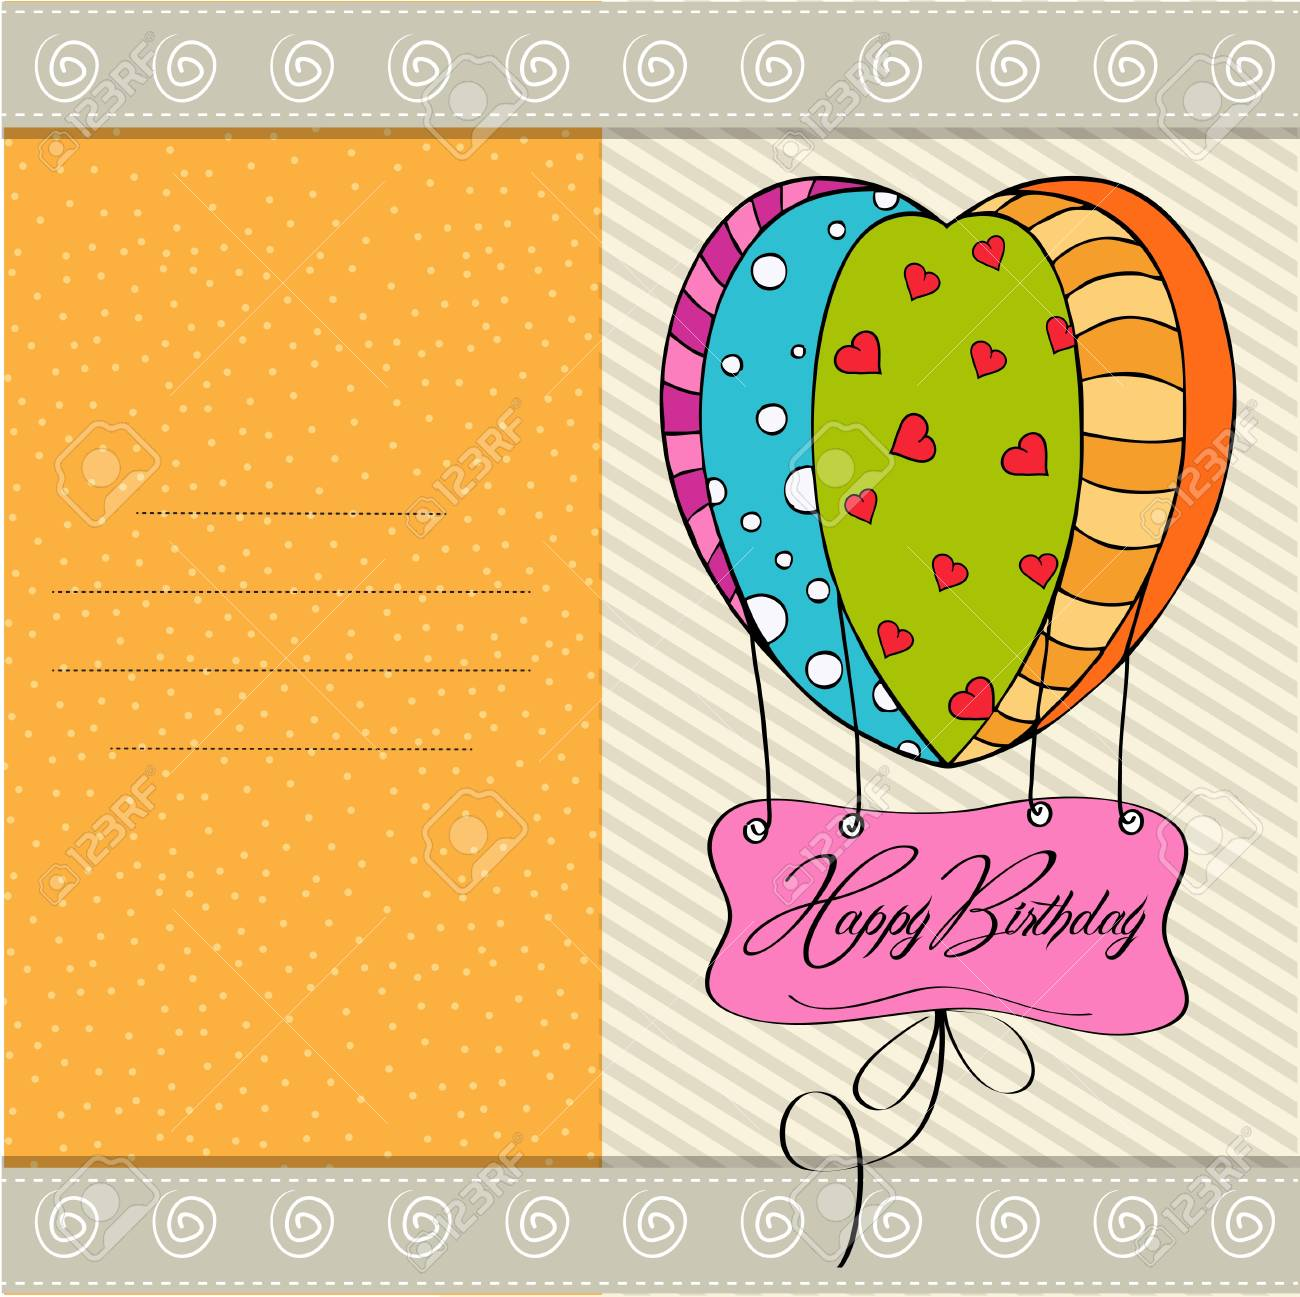 happy birthday card with balloons Stock Vector - 12786354